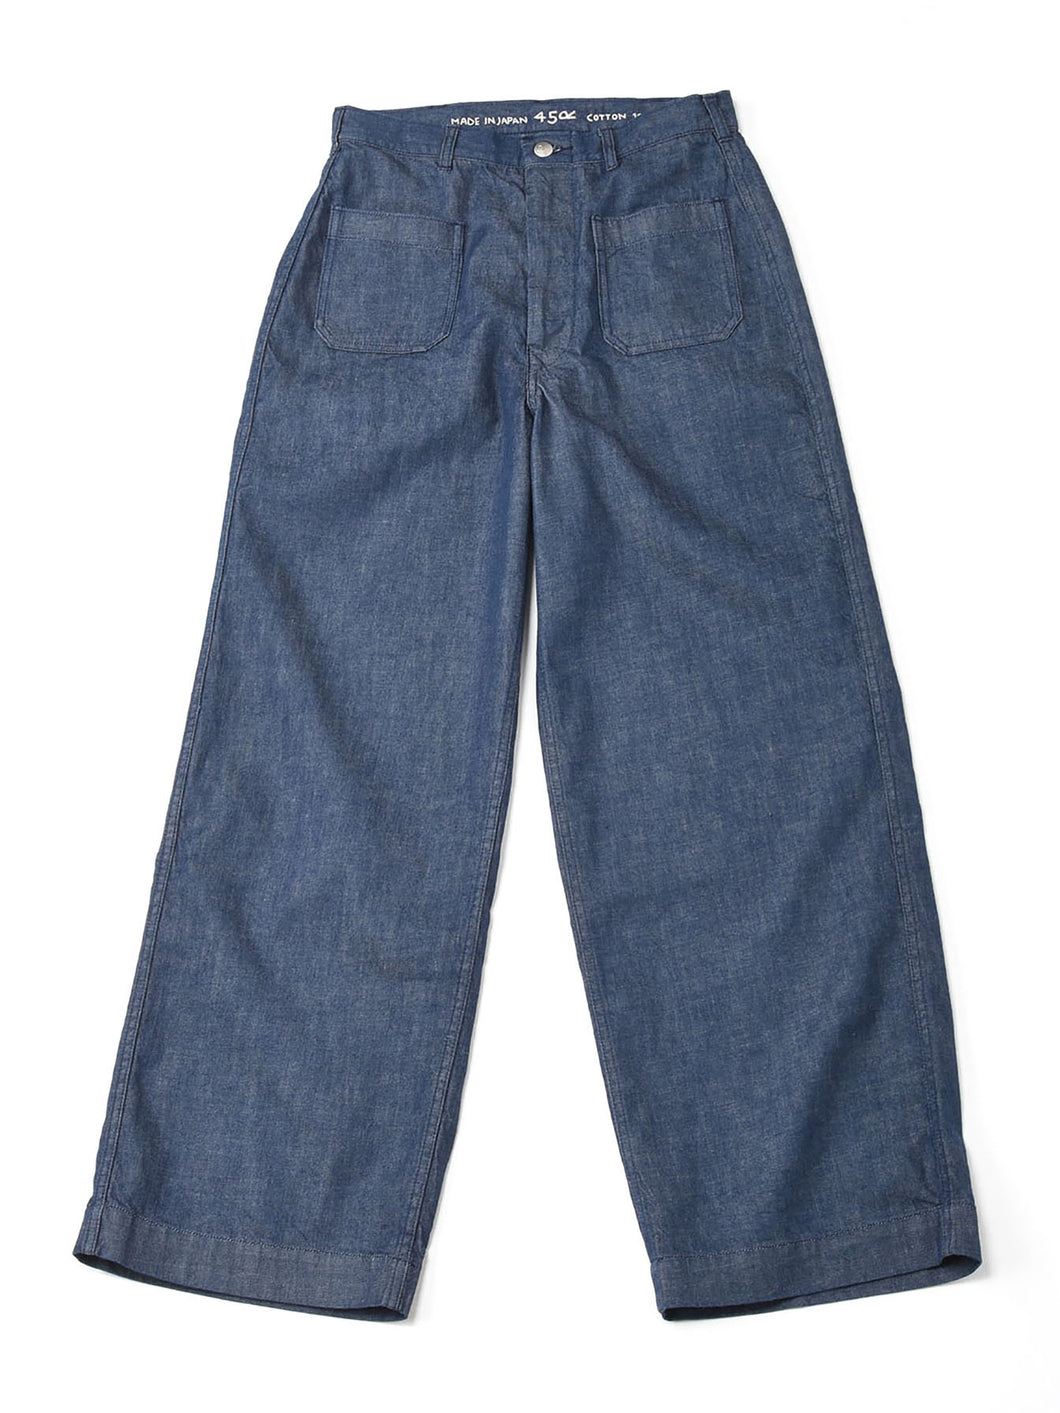 Mugi Cotton Denim 4 Pocket One Wash Pants in indigo